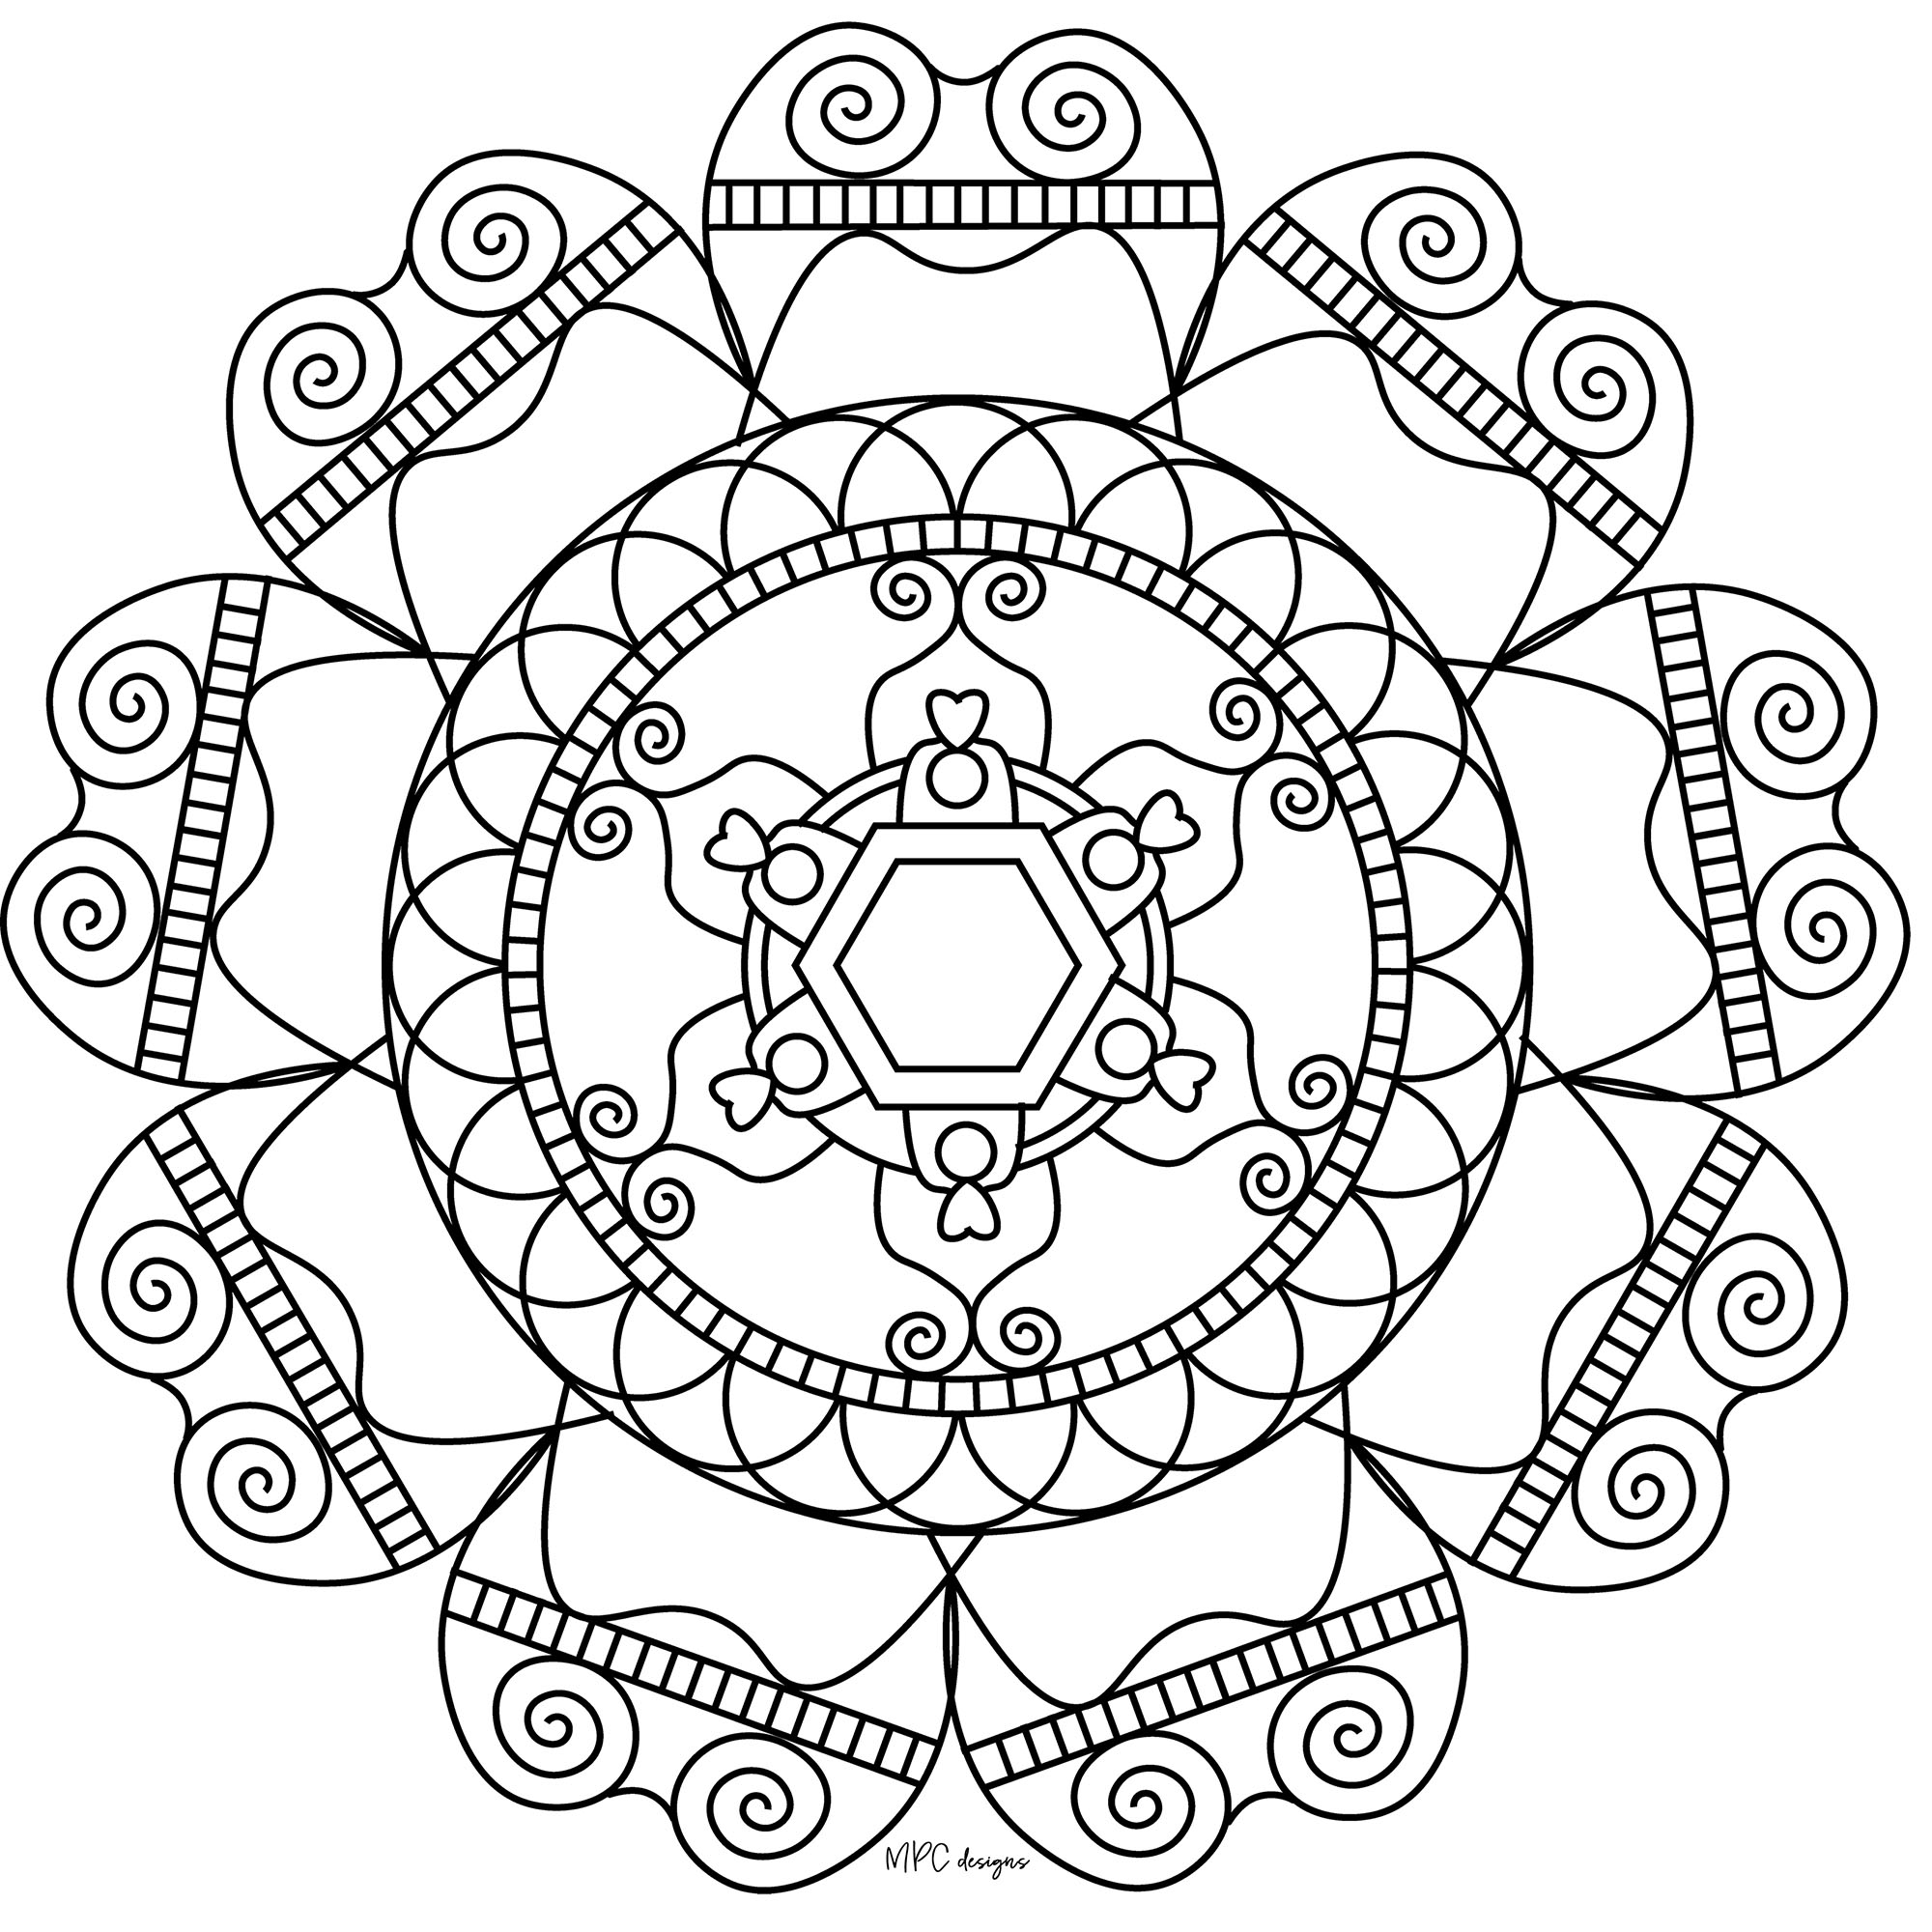 simple mandalas to color coloring pages mandala simple at getdrawings free download to simple color mandalas